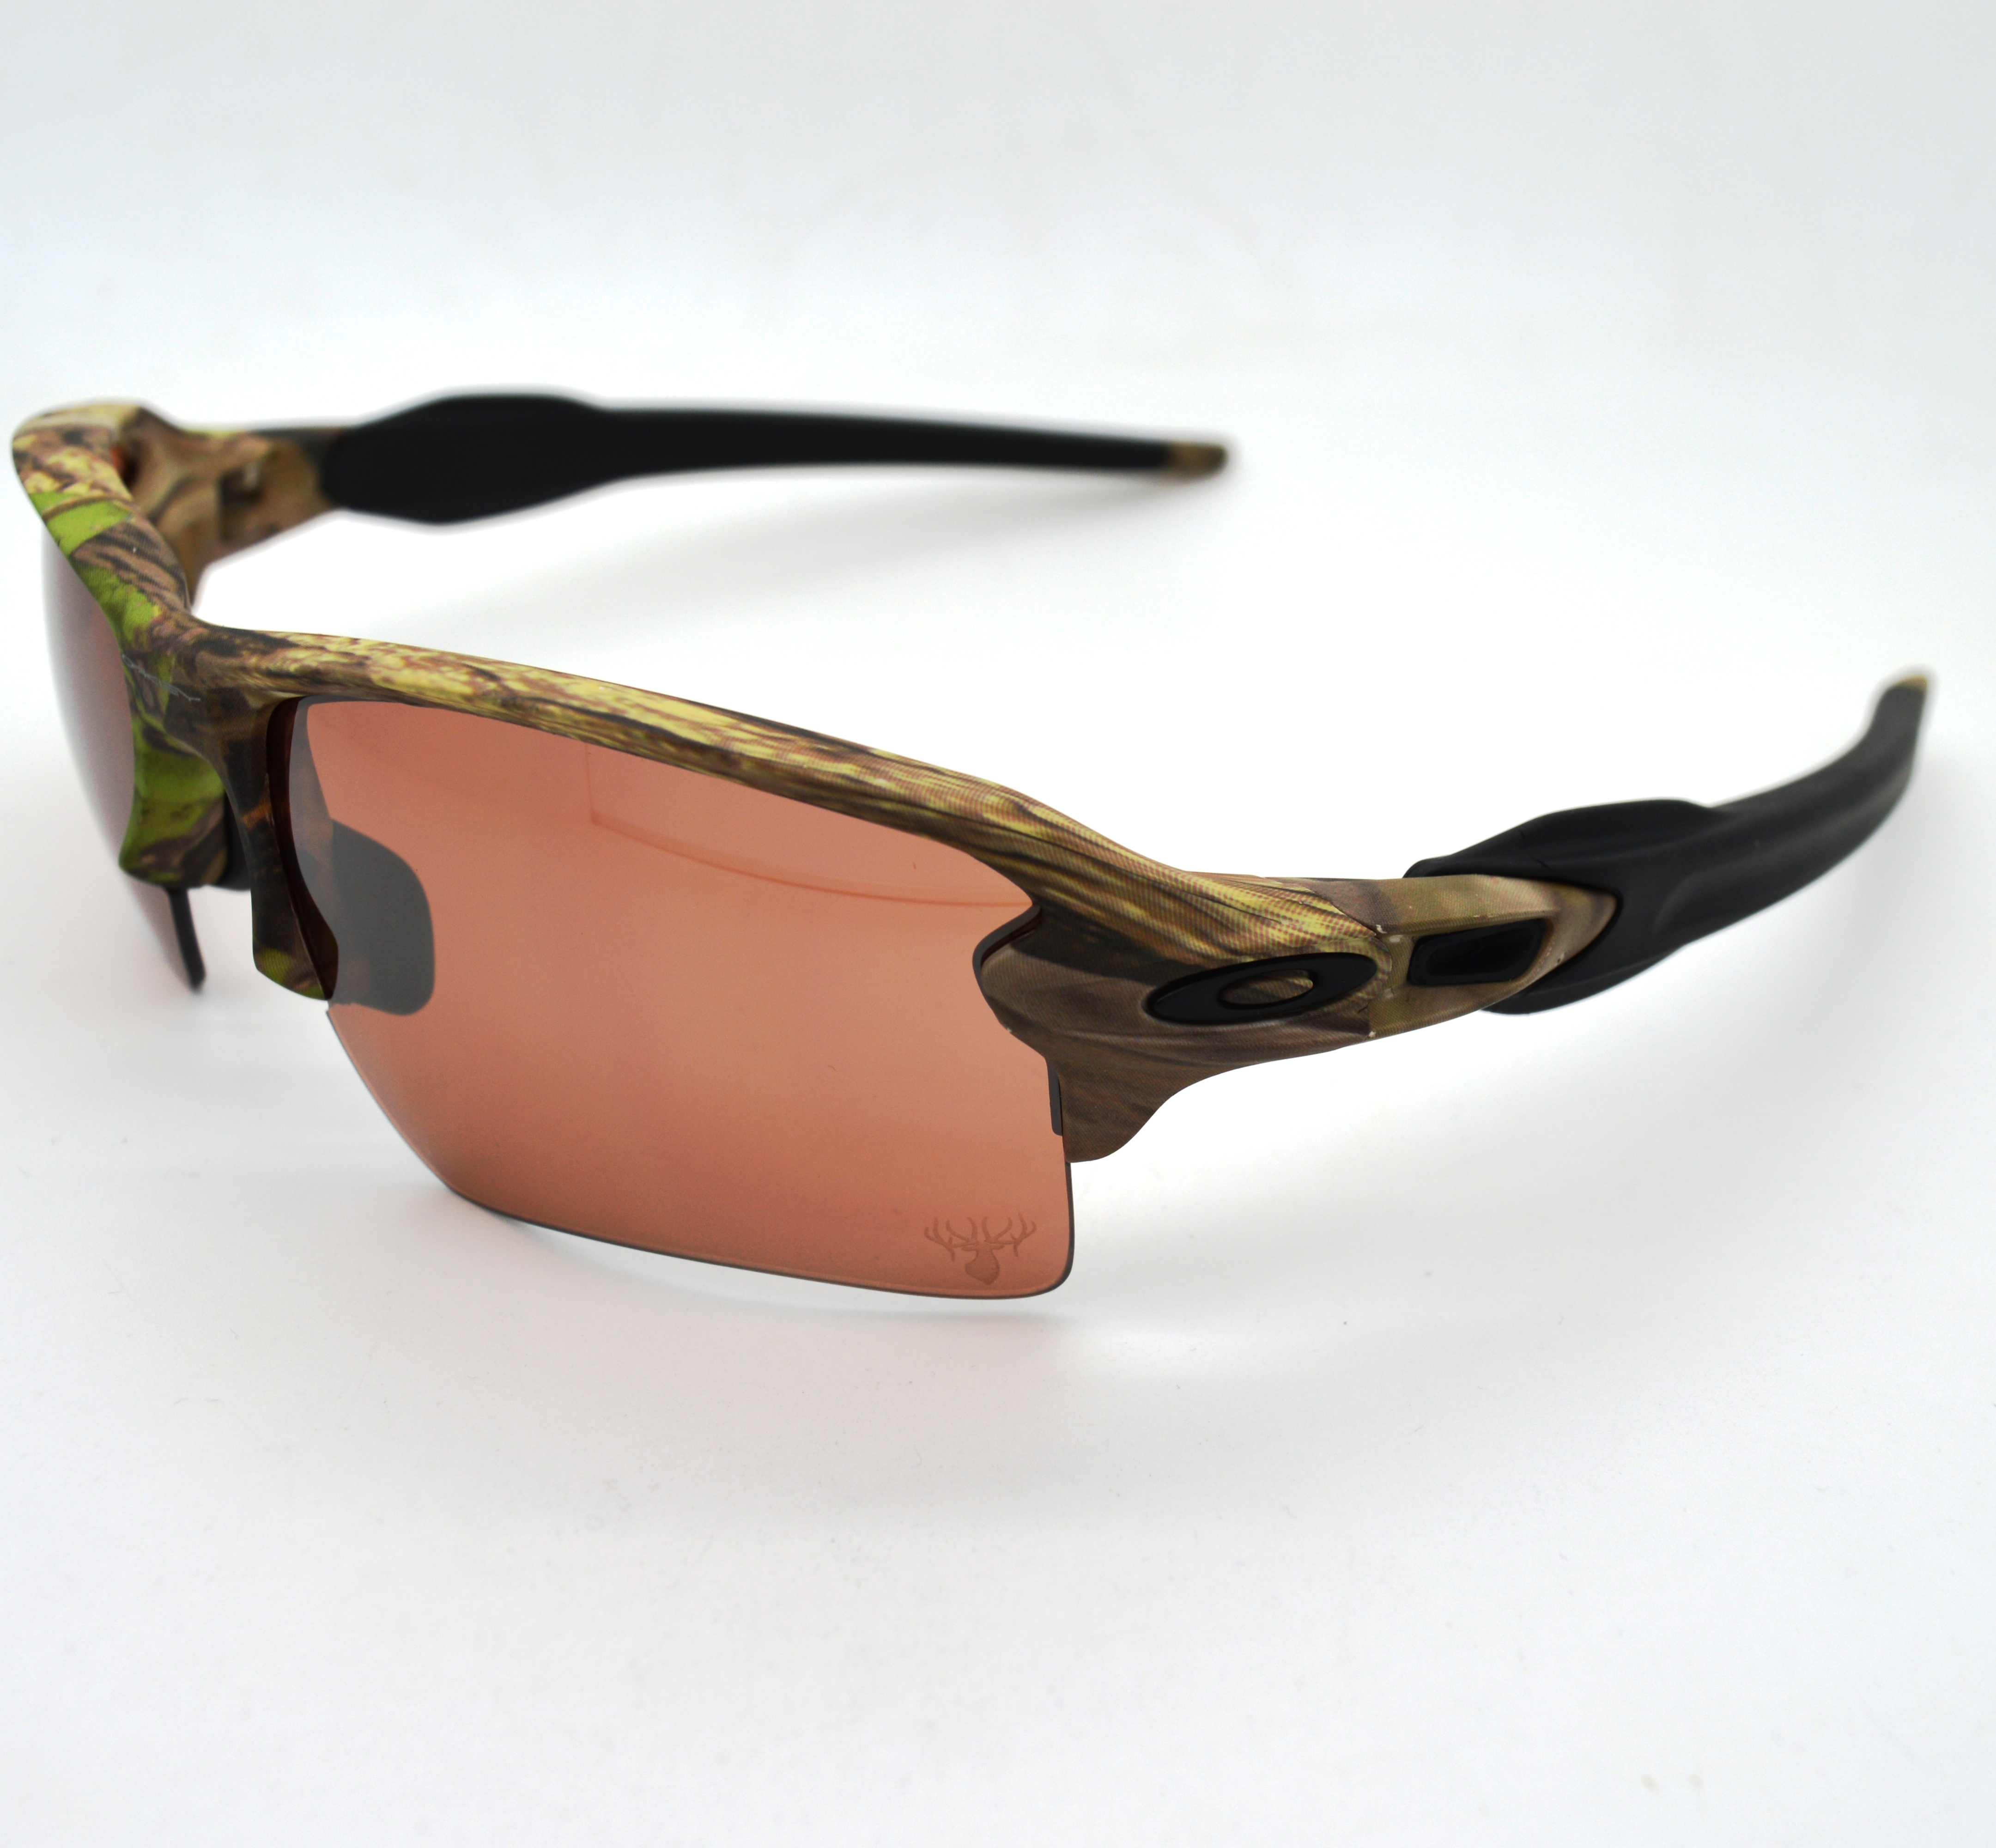 oakley sunglasses camo  Woodland Camo Oakley Sunglasses